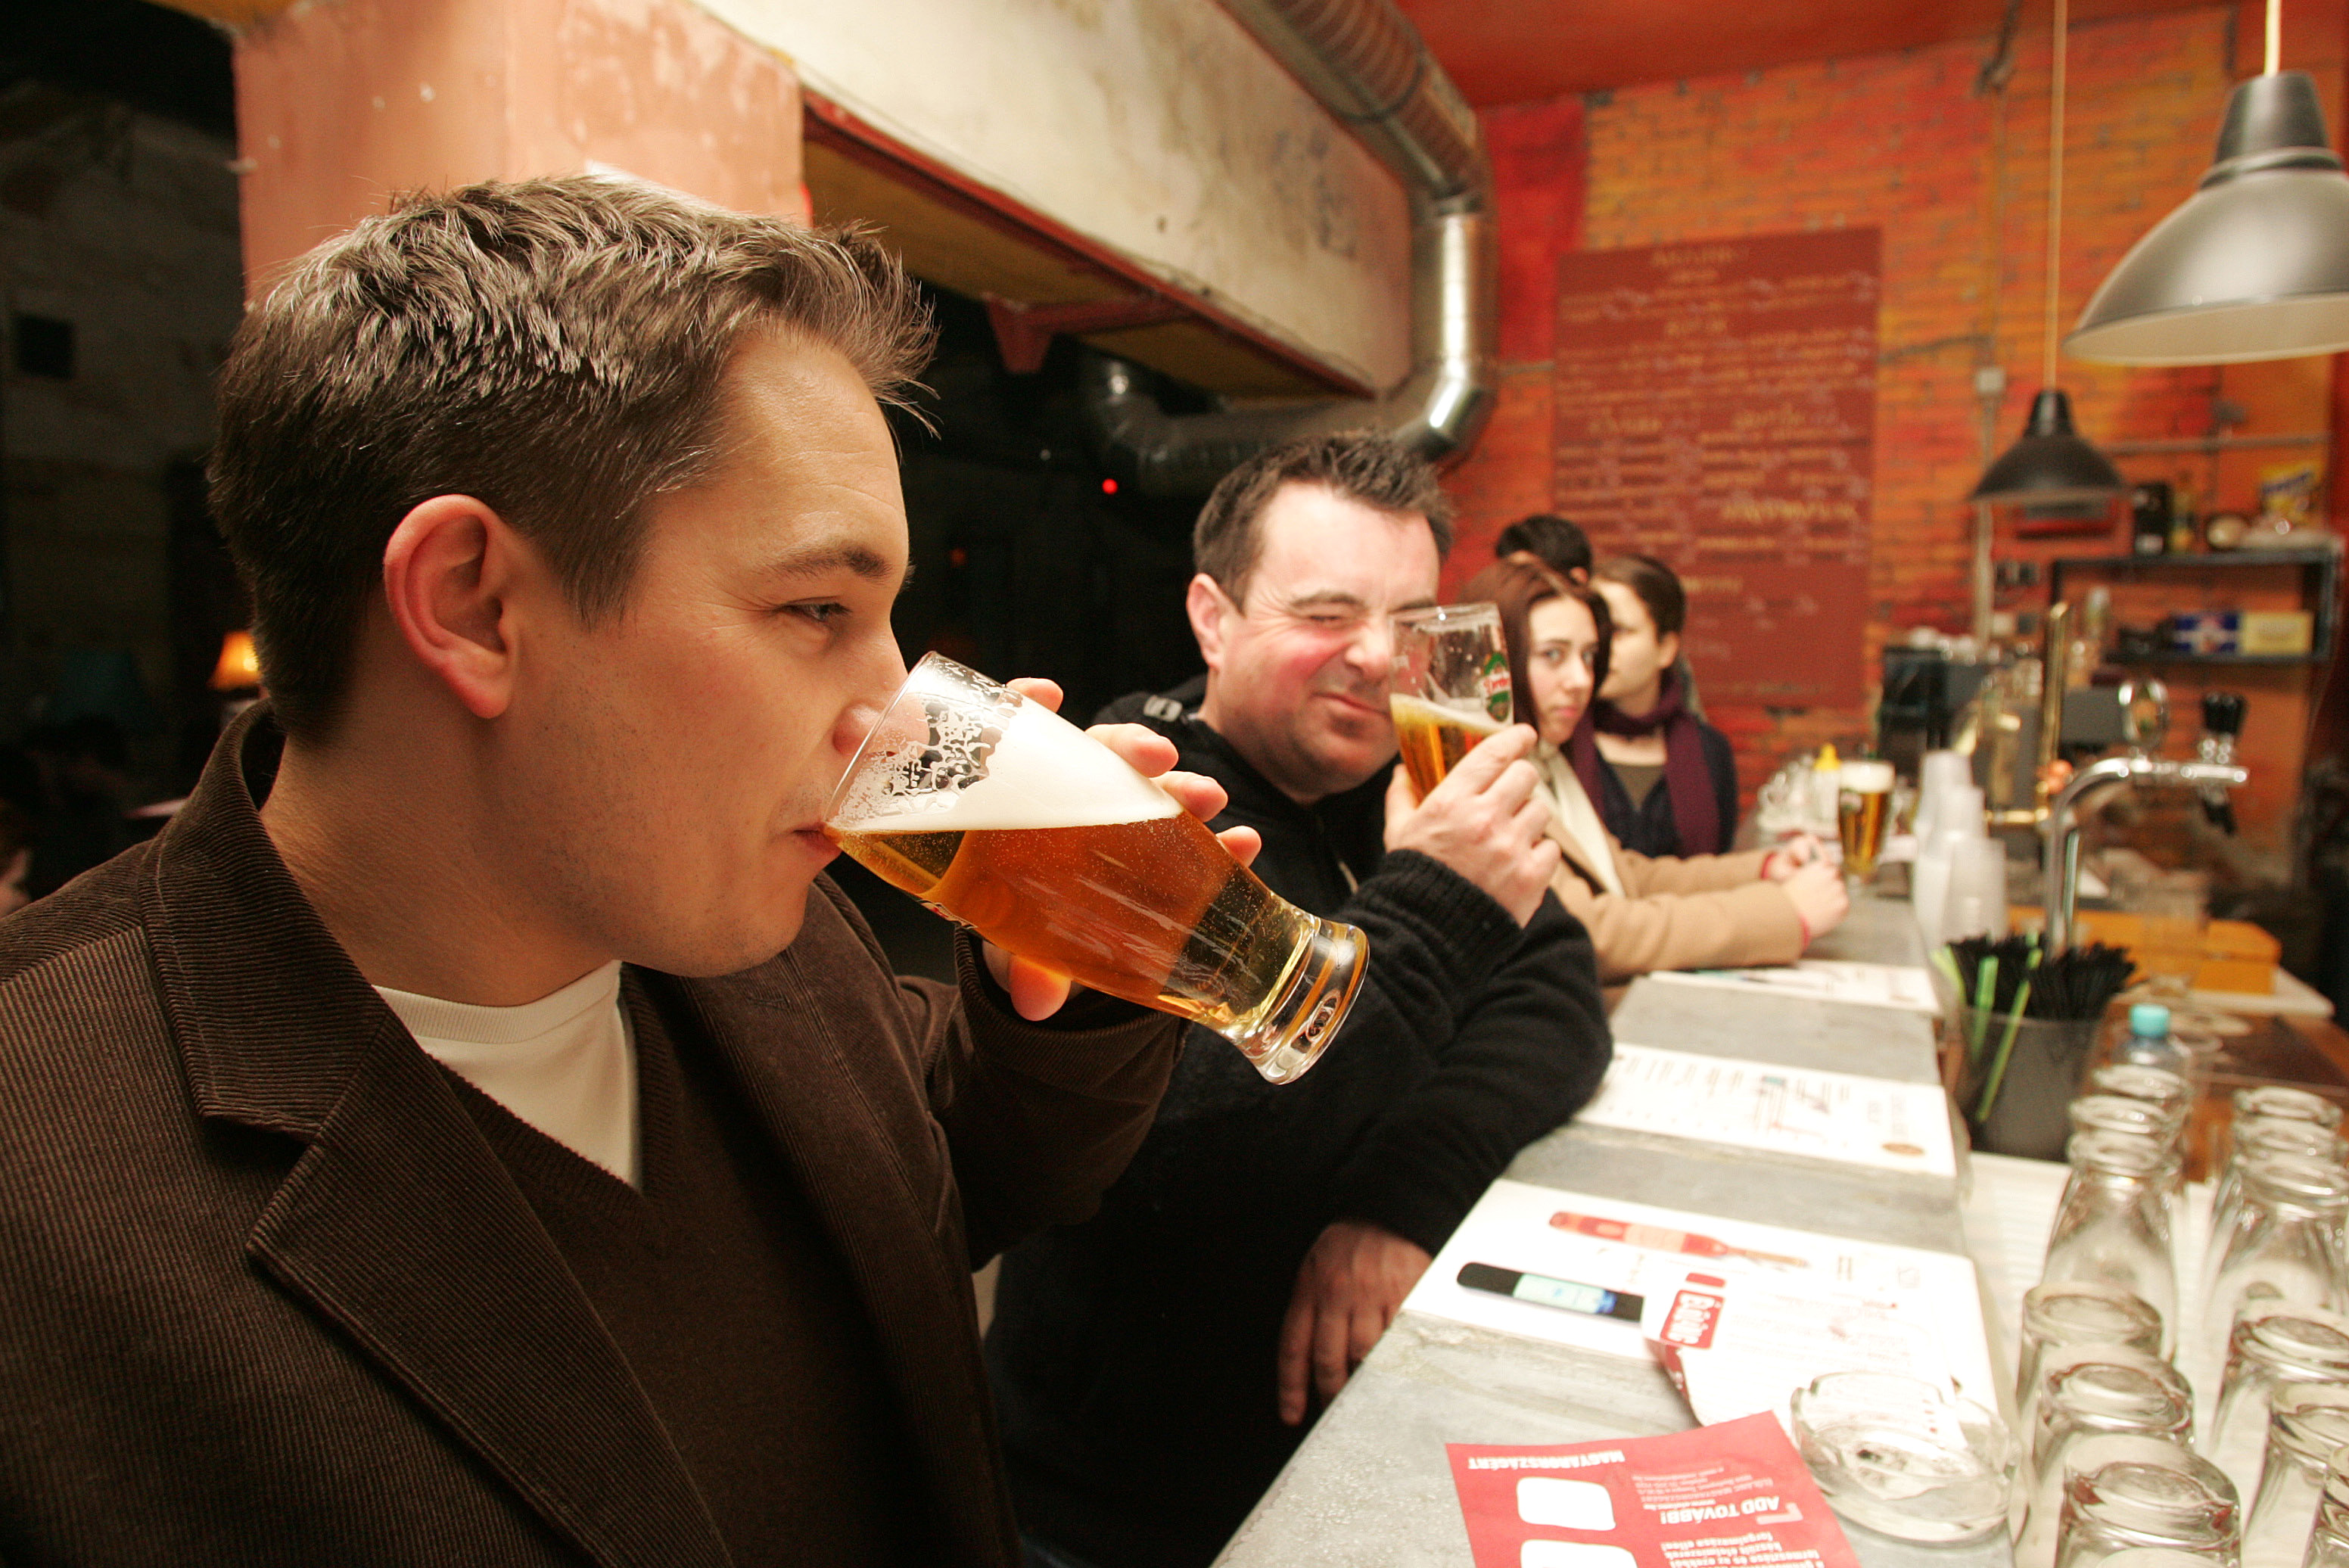 want to have some drinks in hungary